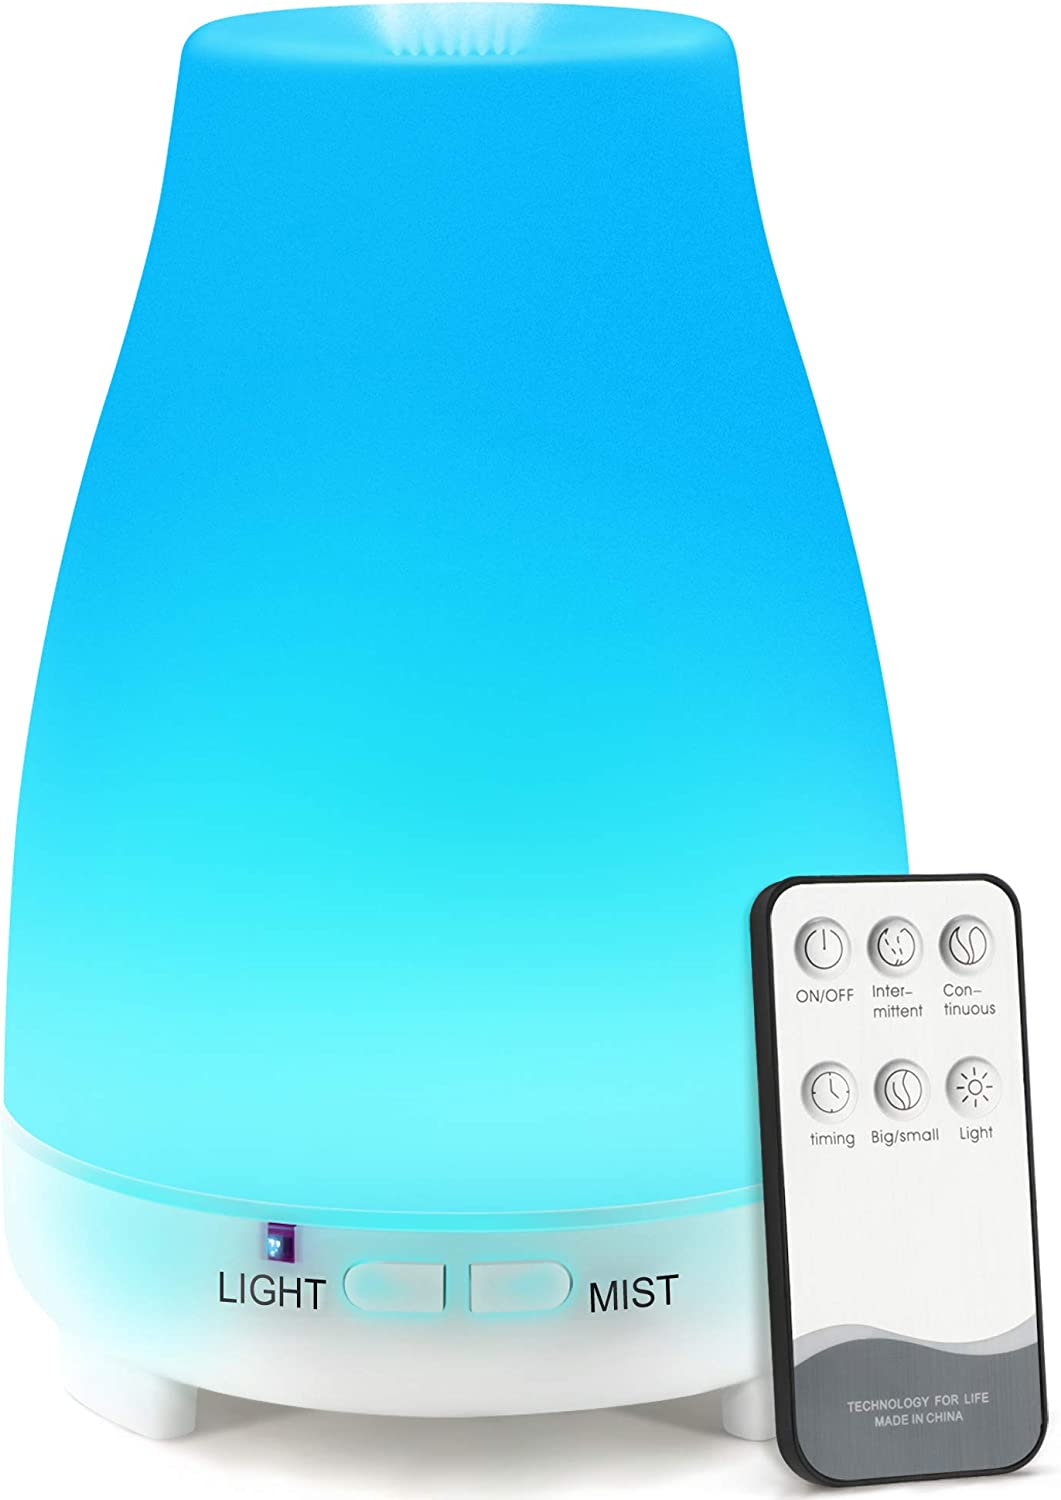 Essential Oil Diffuser, AIMASON 200ML BPA-Free Ultrasonic Air Mist Diffuser Humidifier for Aromatherapy with Adjustable Mist Mode and Waterless Auto Shut-Off for Home, Office, Bedroom, White